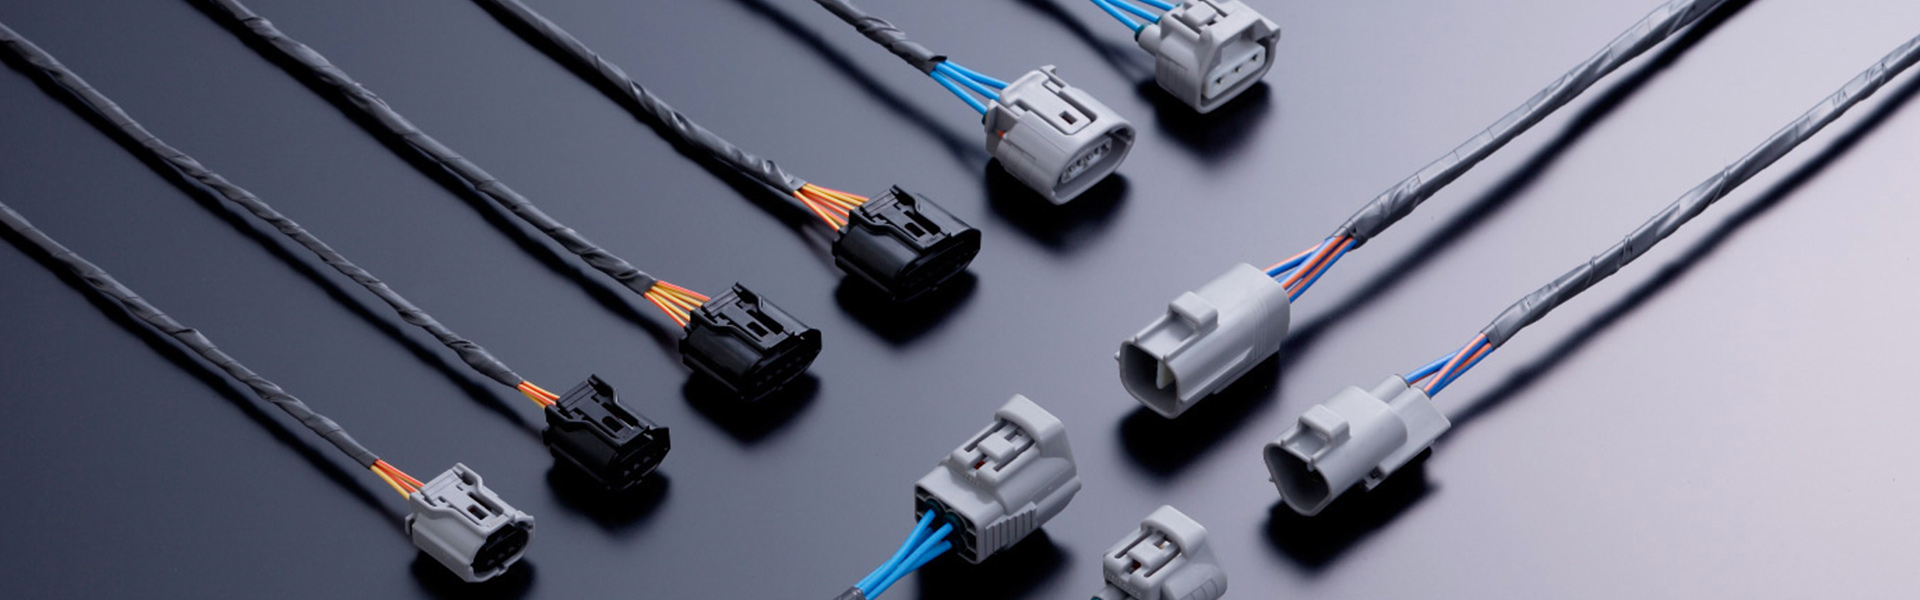 Home - SEWS CABIND Japanese Auto Wire Harness Manufacturer on